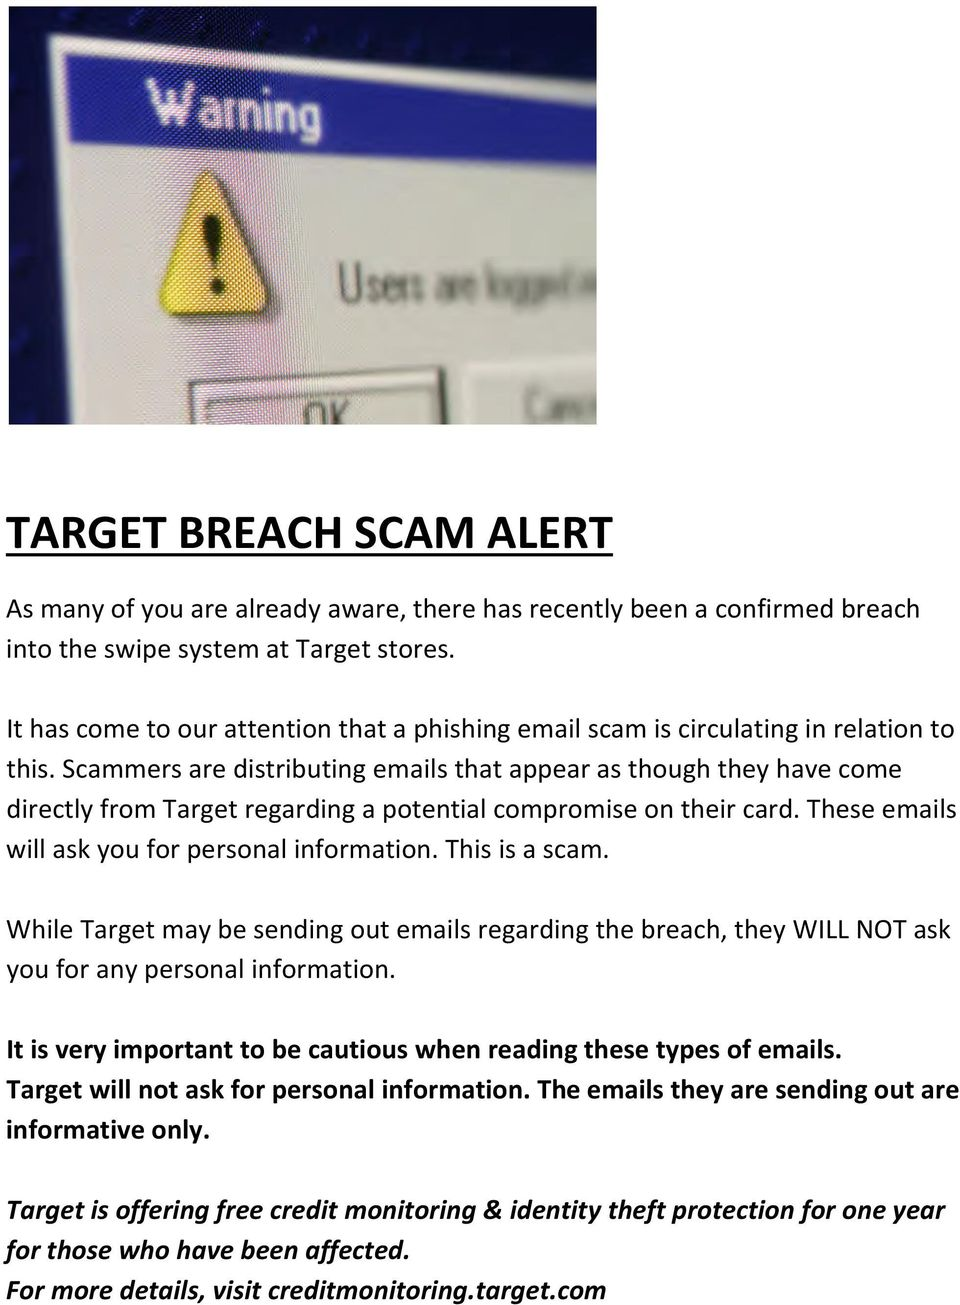 Scammers are distributing emails that appear as though they have come directly from Target regarding a potential compromise on their card. These emails will ask you for personal information.